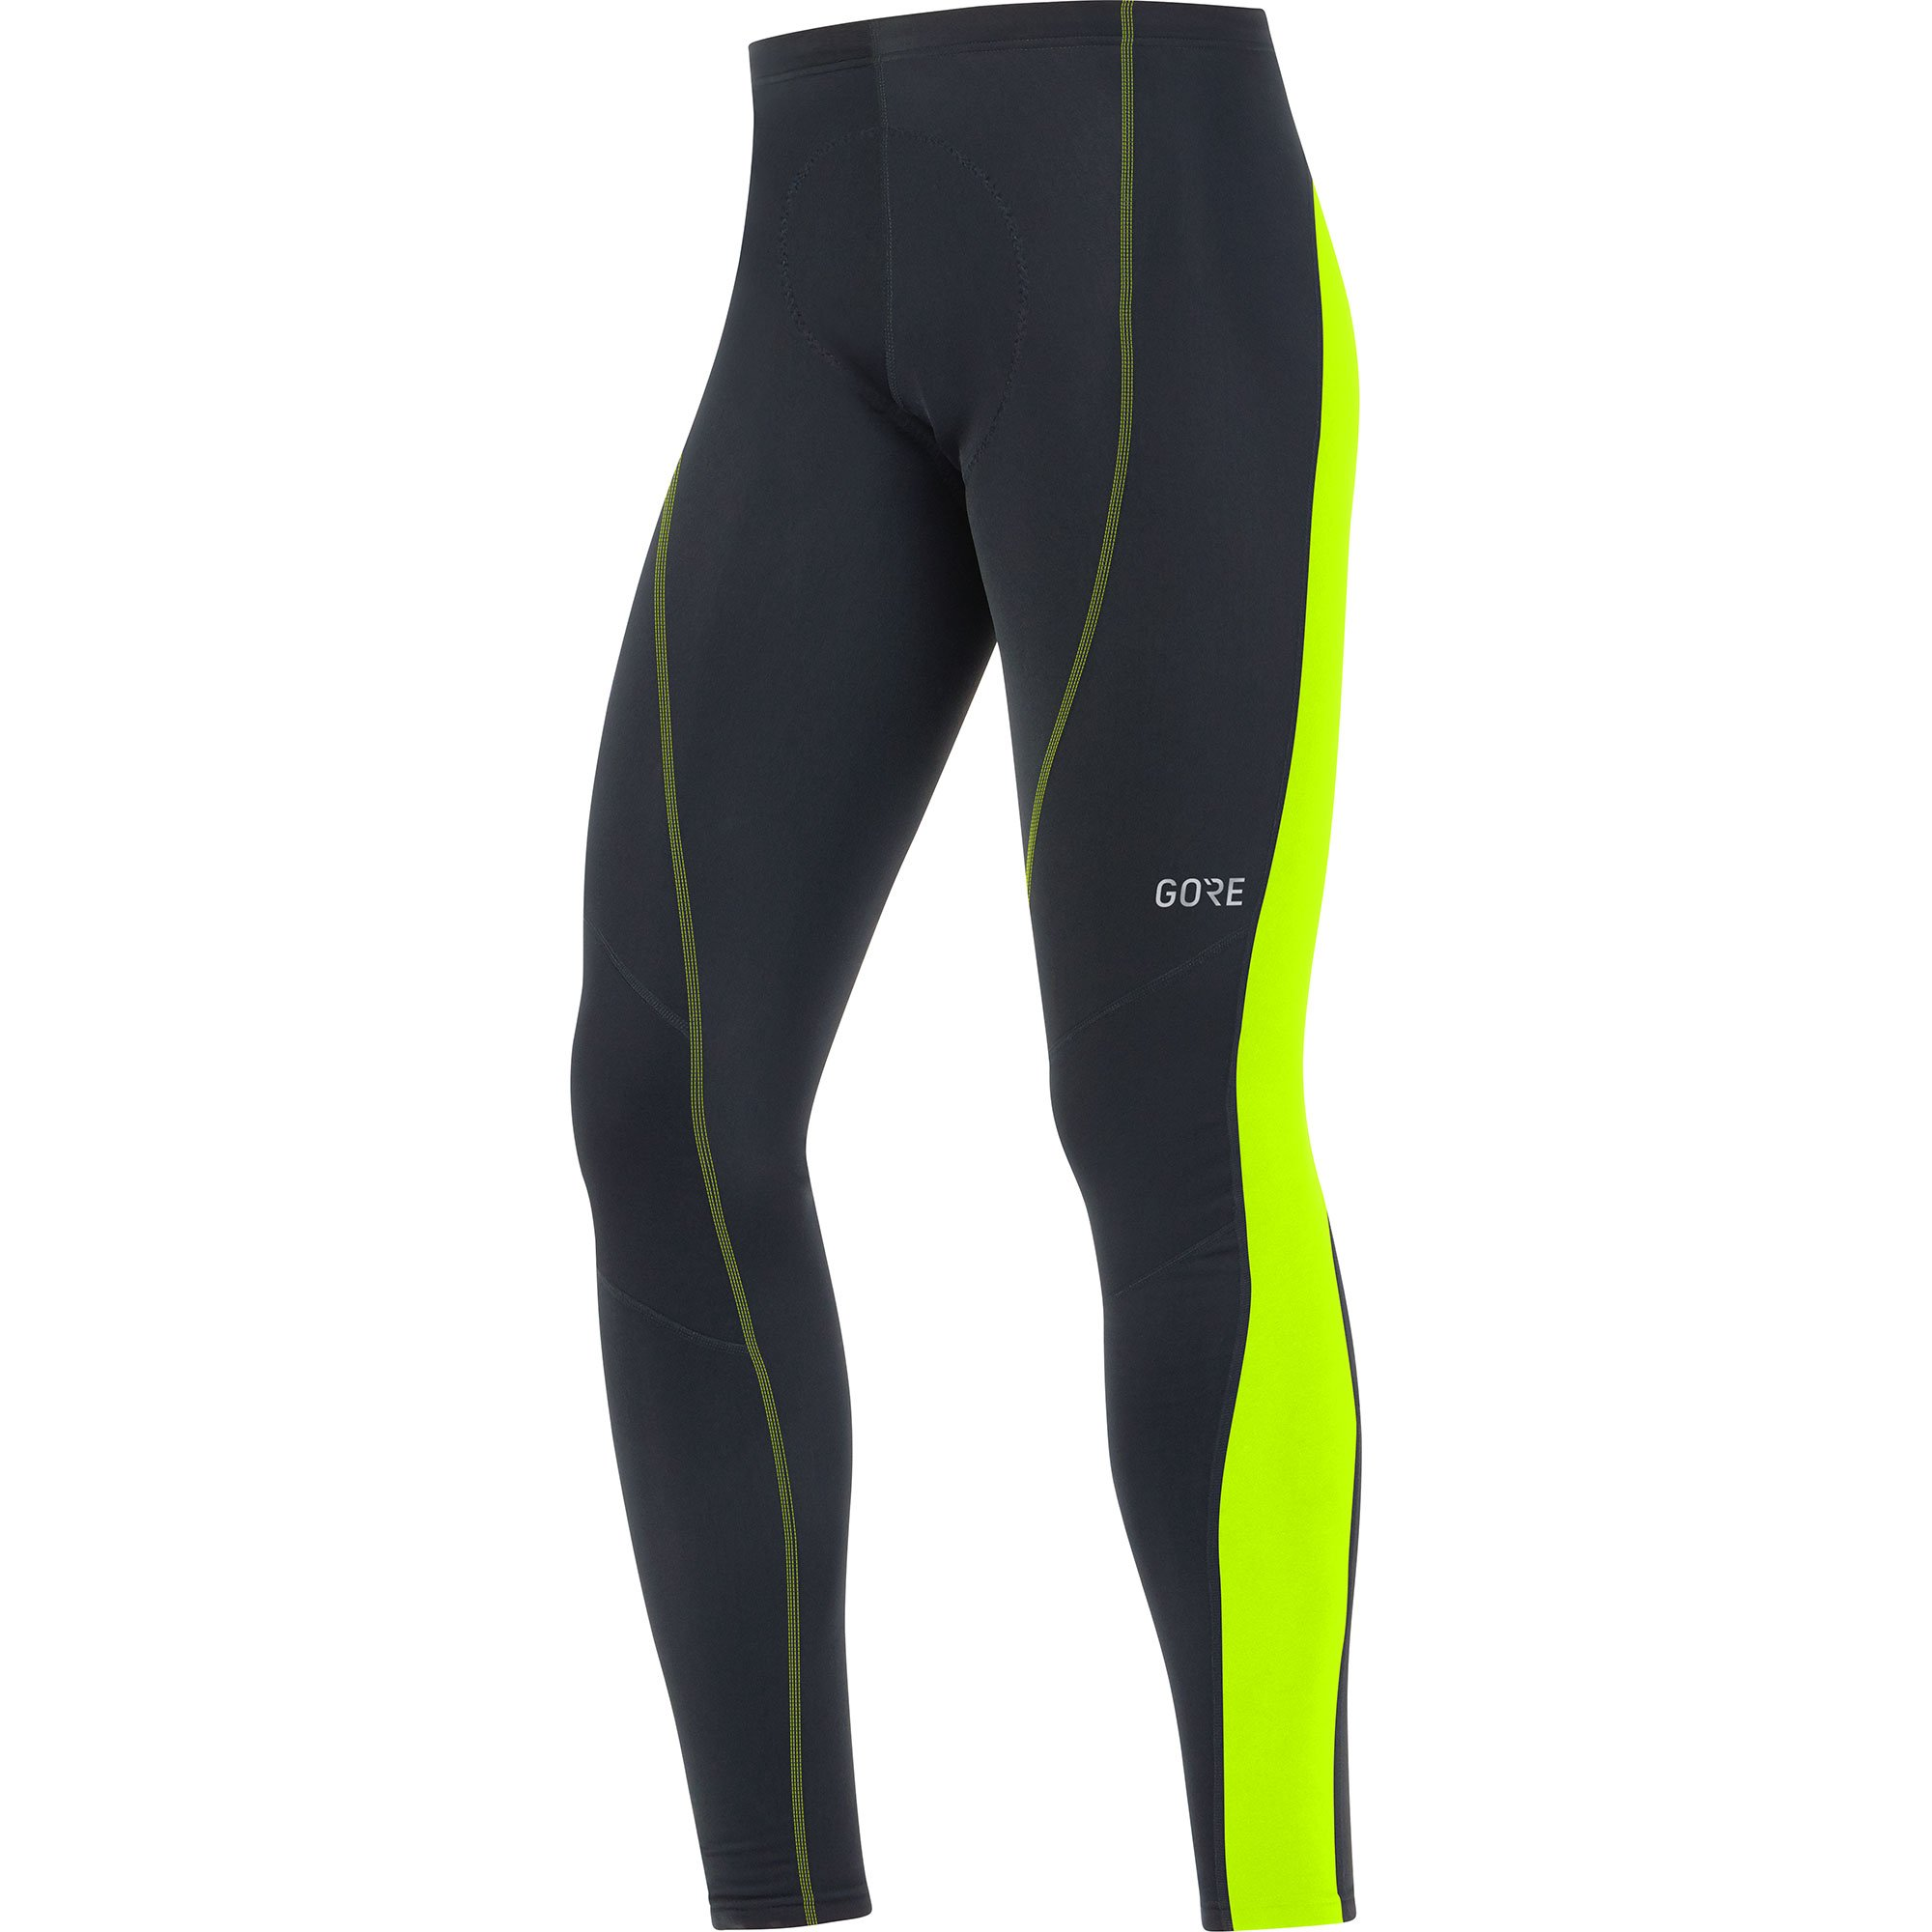 GORE WEAR Men's Breathable, Long Bike Tights, with